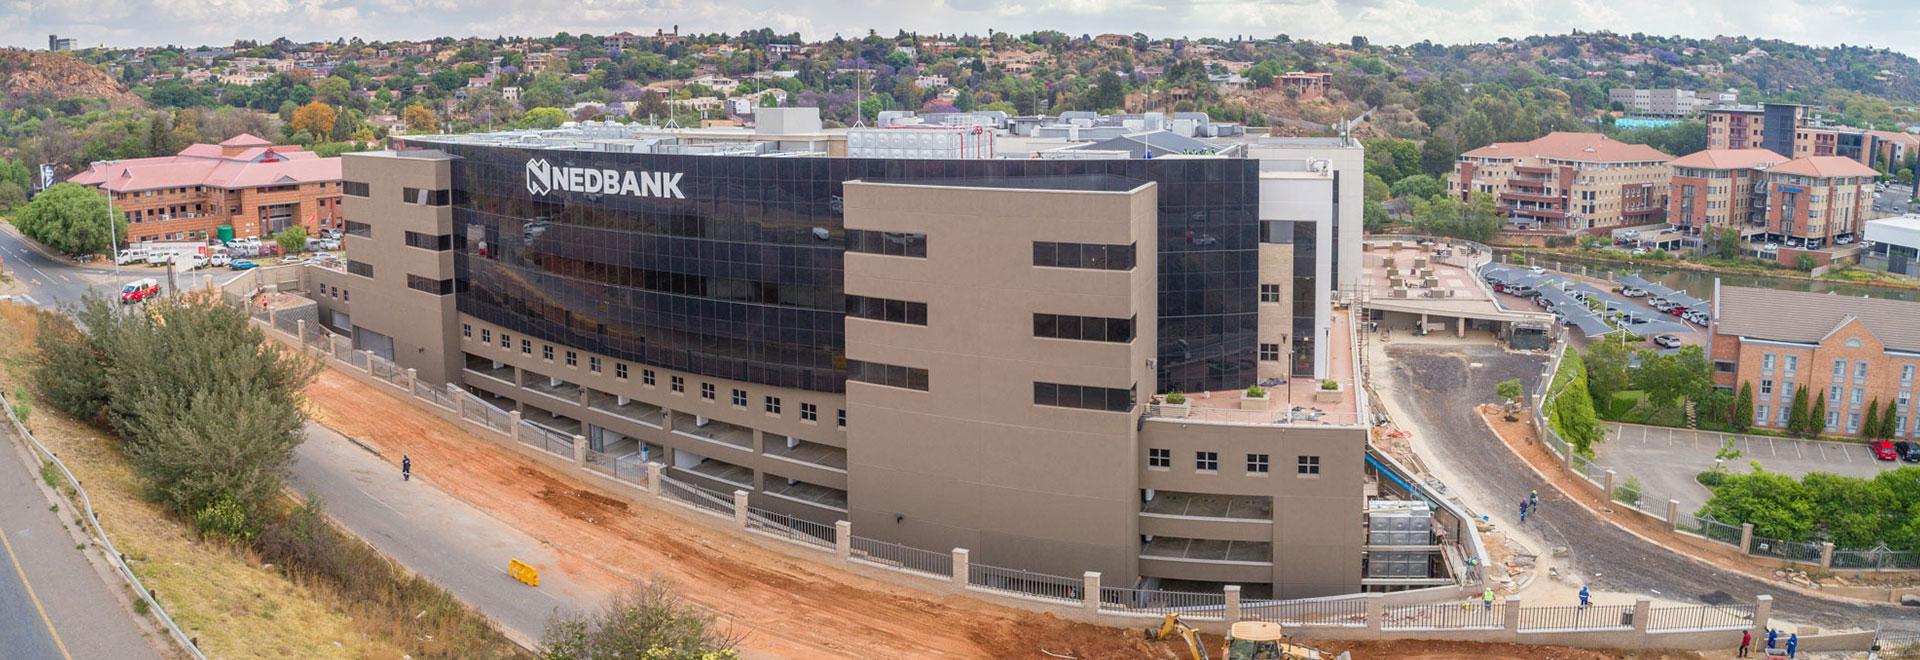 Nedbank Lakeview